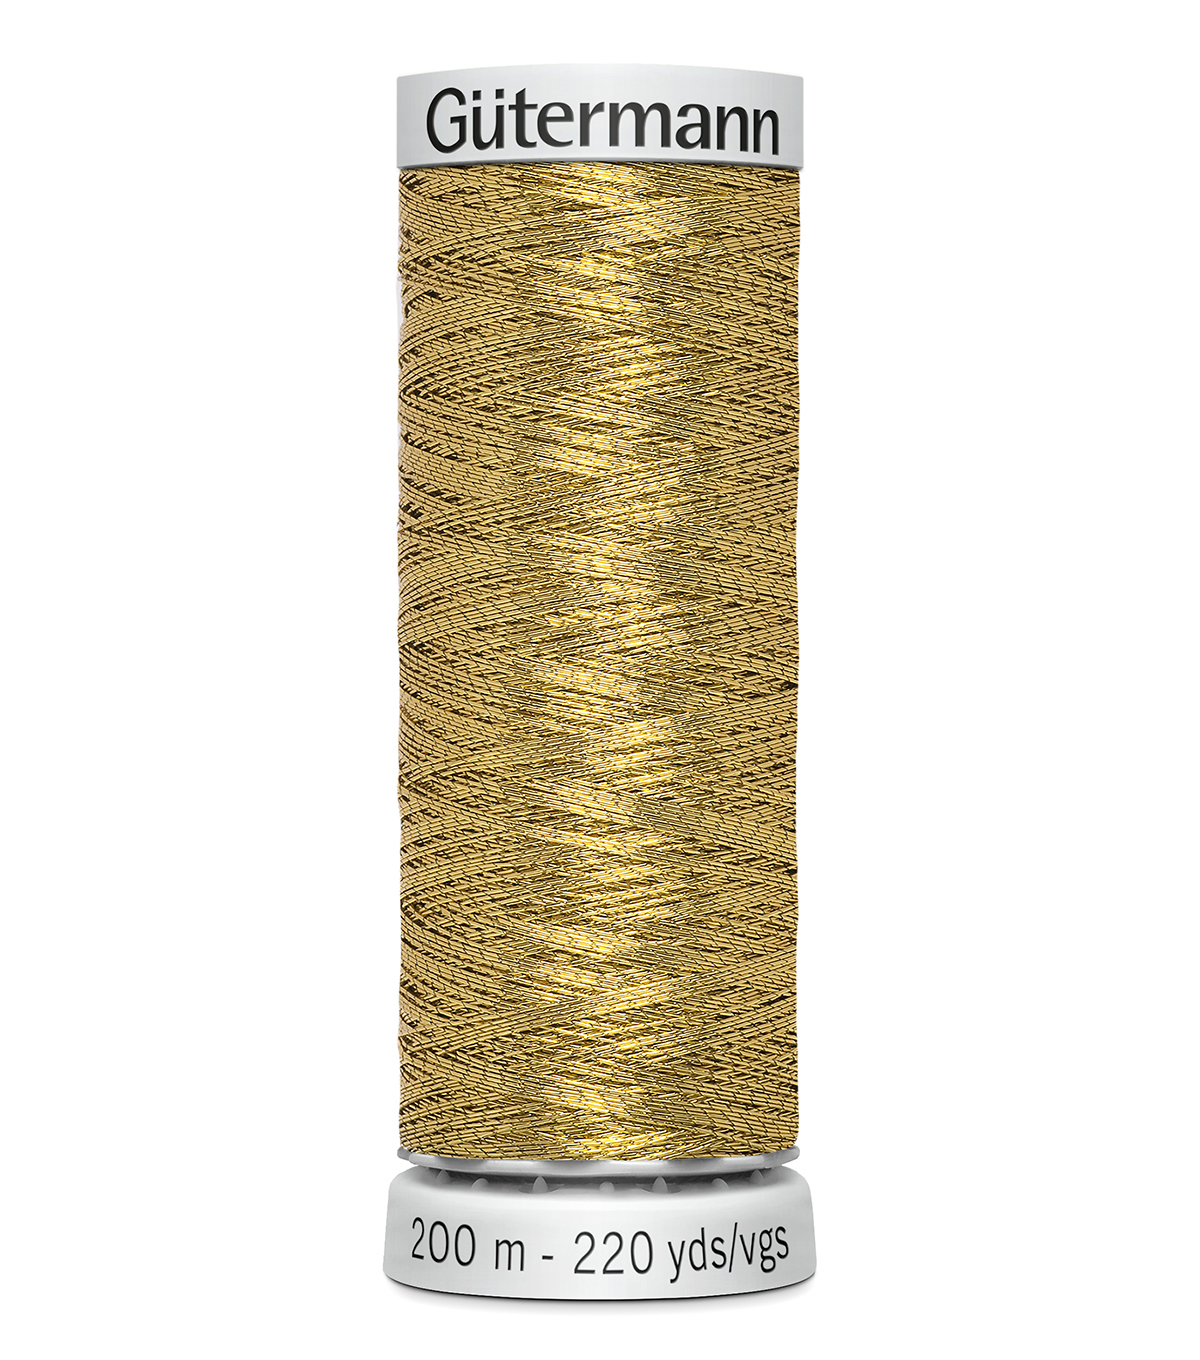 Gutermann 200M Dekor Thread, 200m Dekor Metallic-antique Go